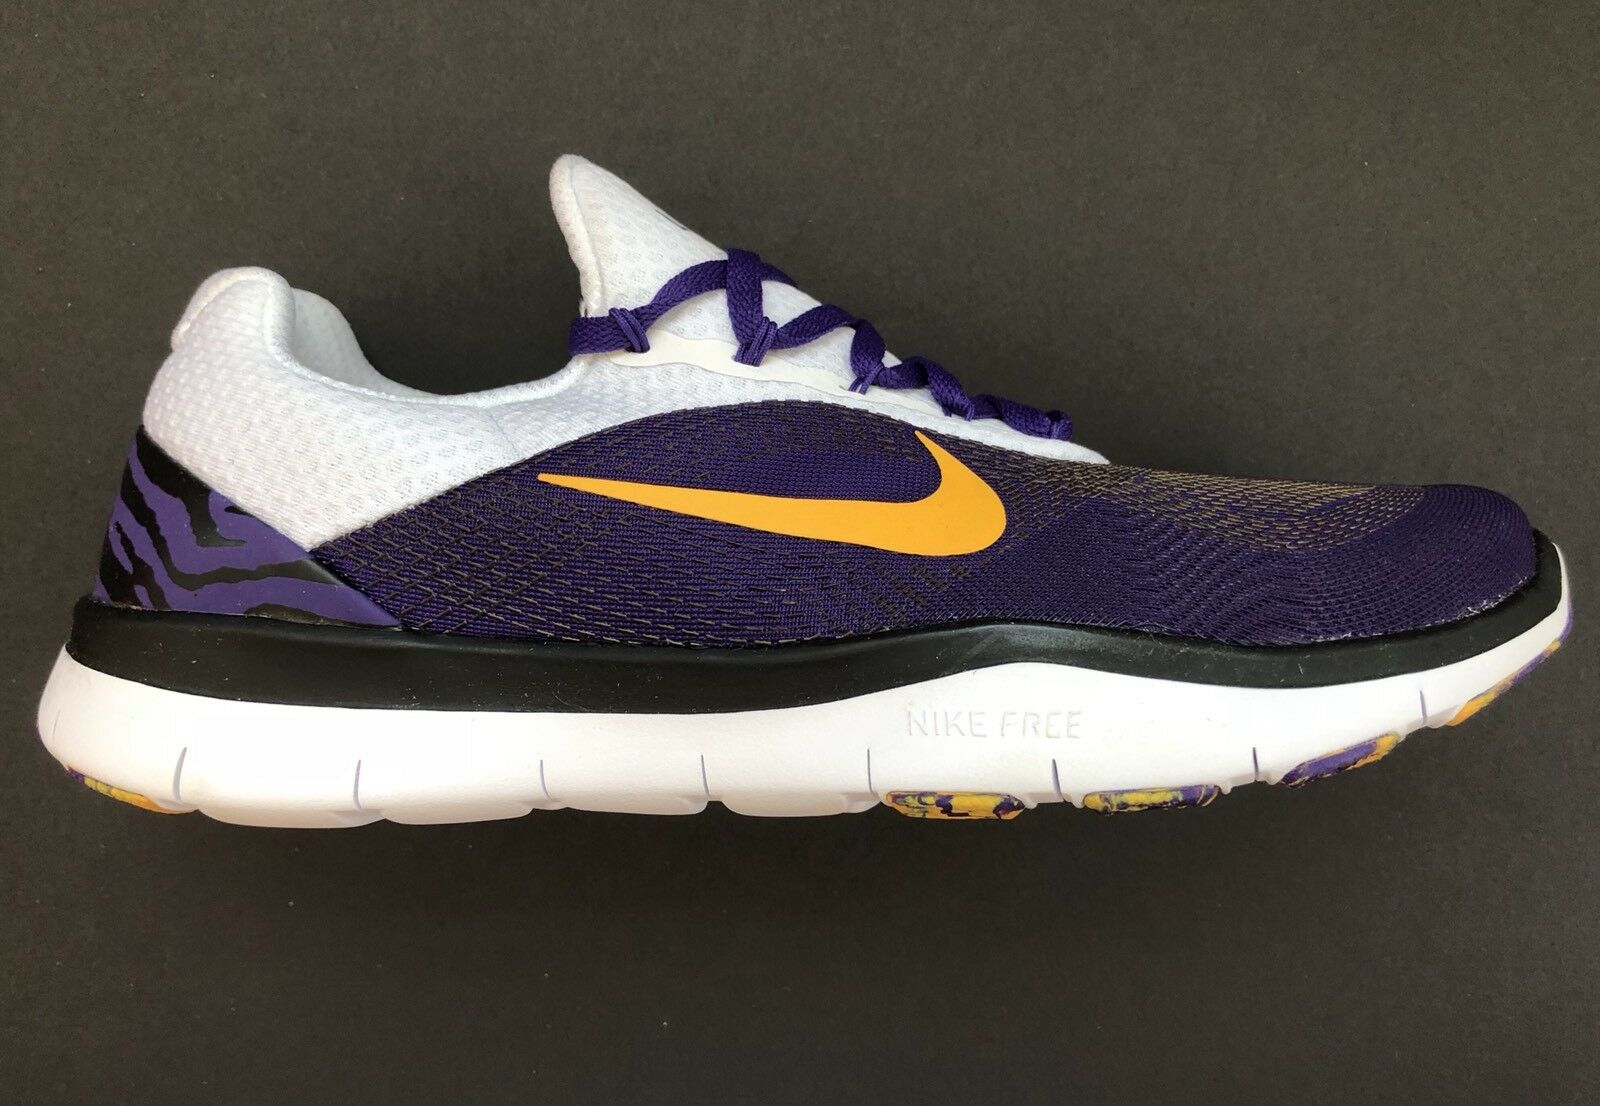 Nike LSU Tigers Free Trainer Edition V7 Week Zero Ltd Edition Trainer Shoes AA0881-500 Size 9 US d52535